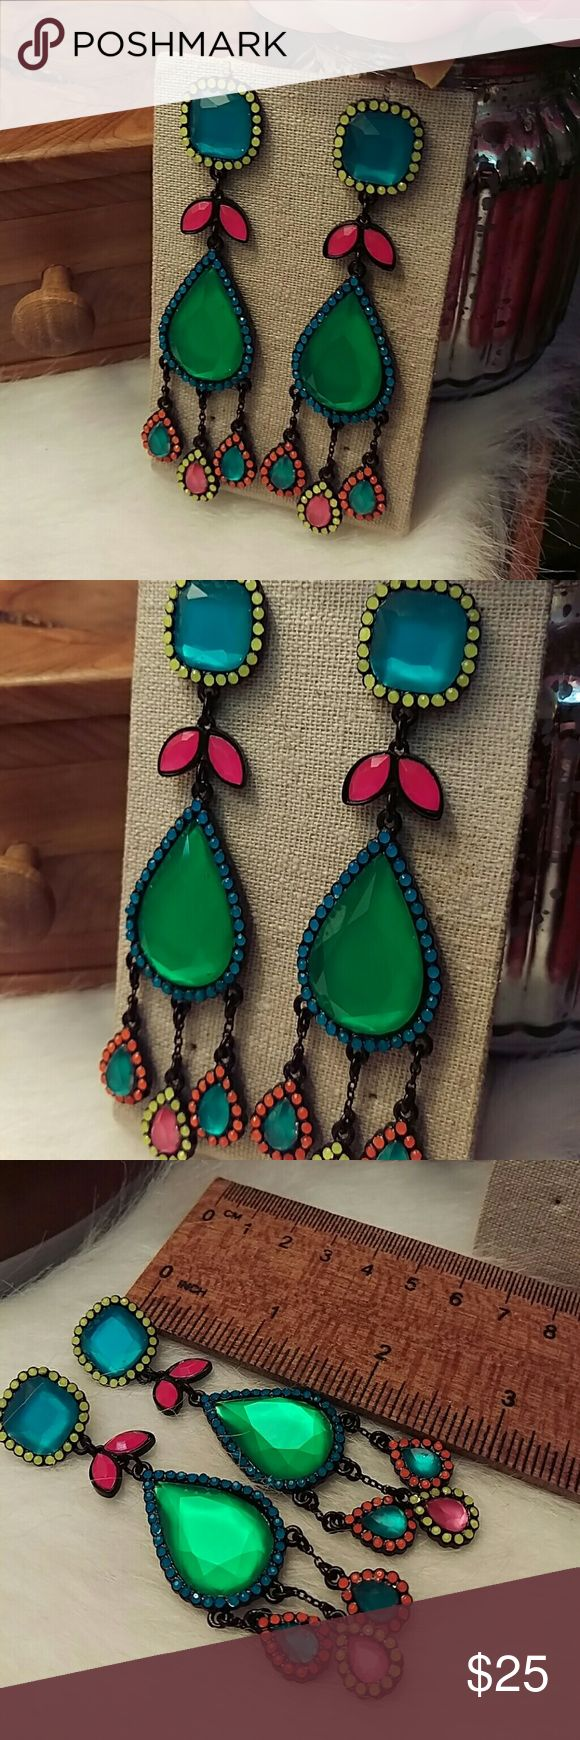 Punch neon geometric dangling earrings Light surface scratches. No missing crystals Punch Jewelry Earrings